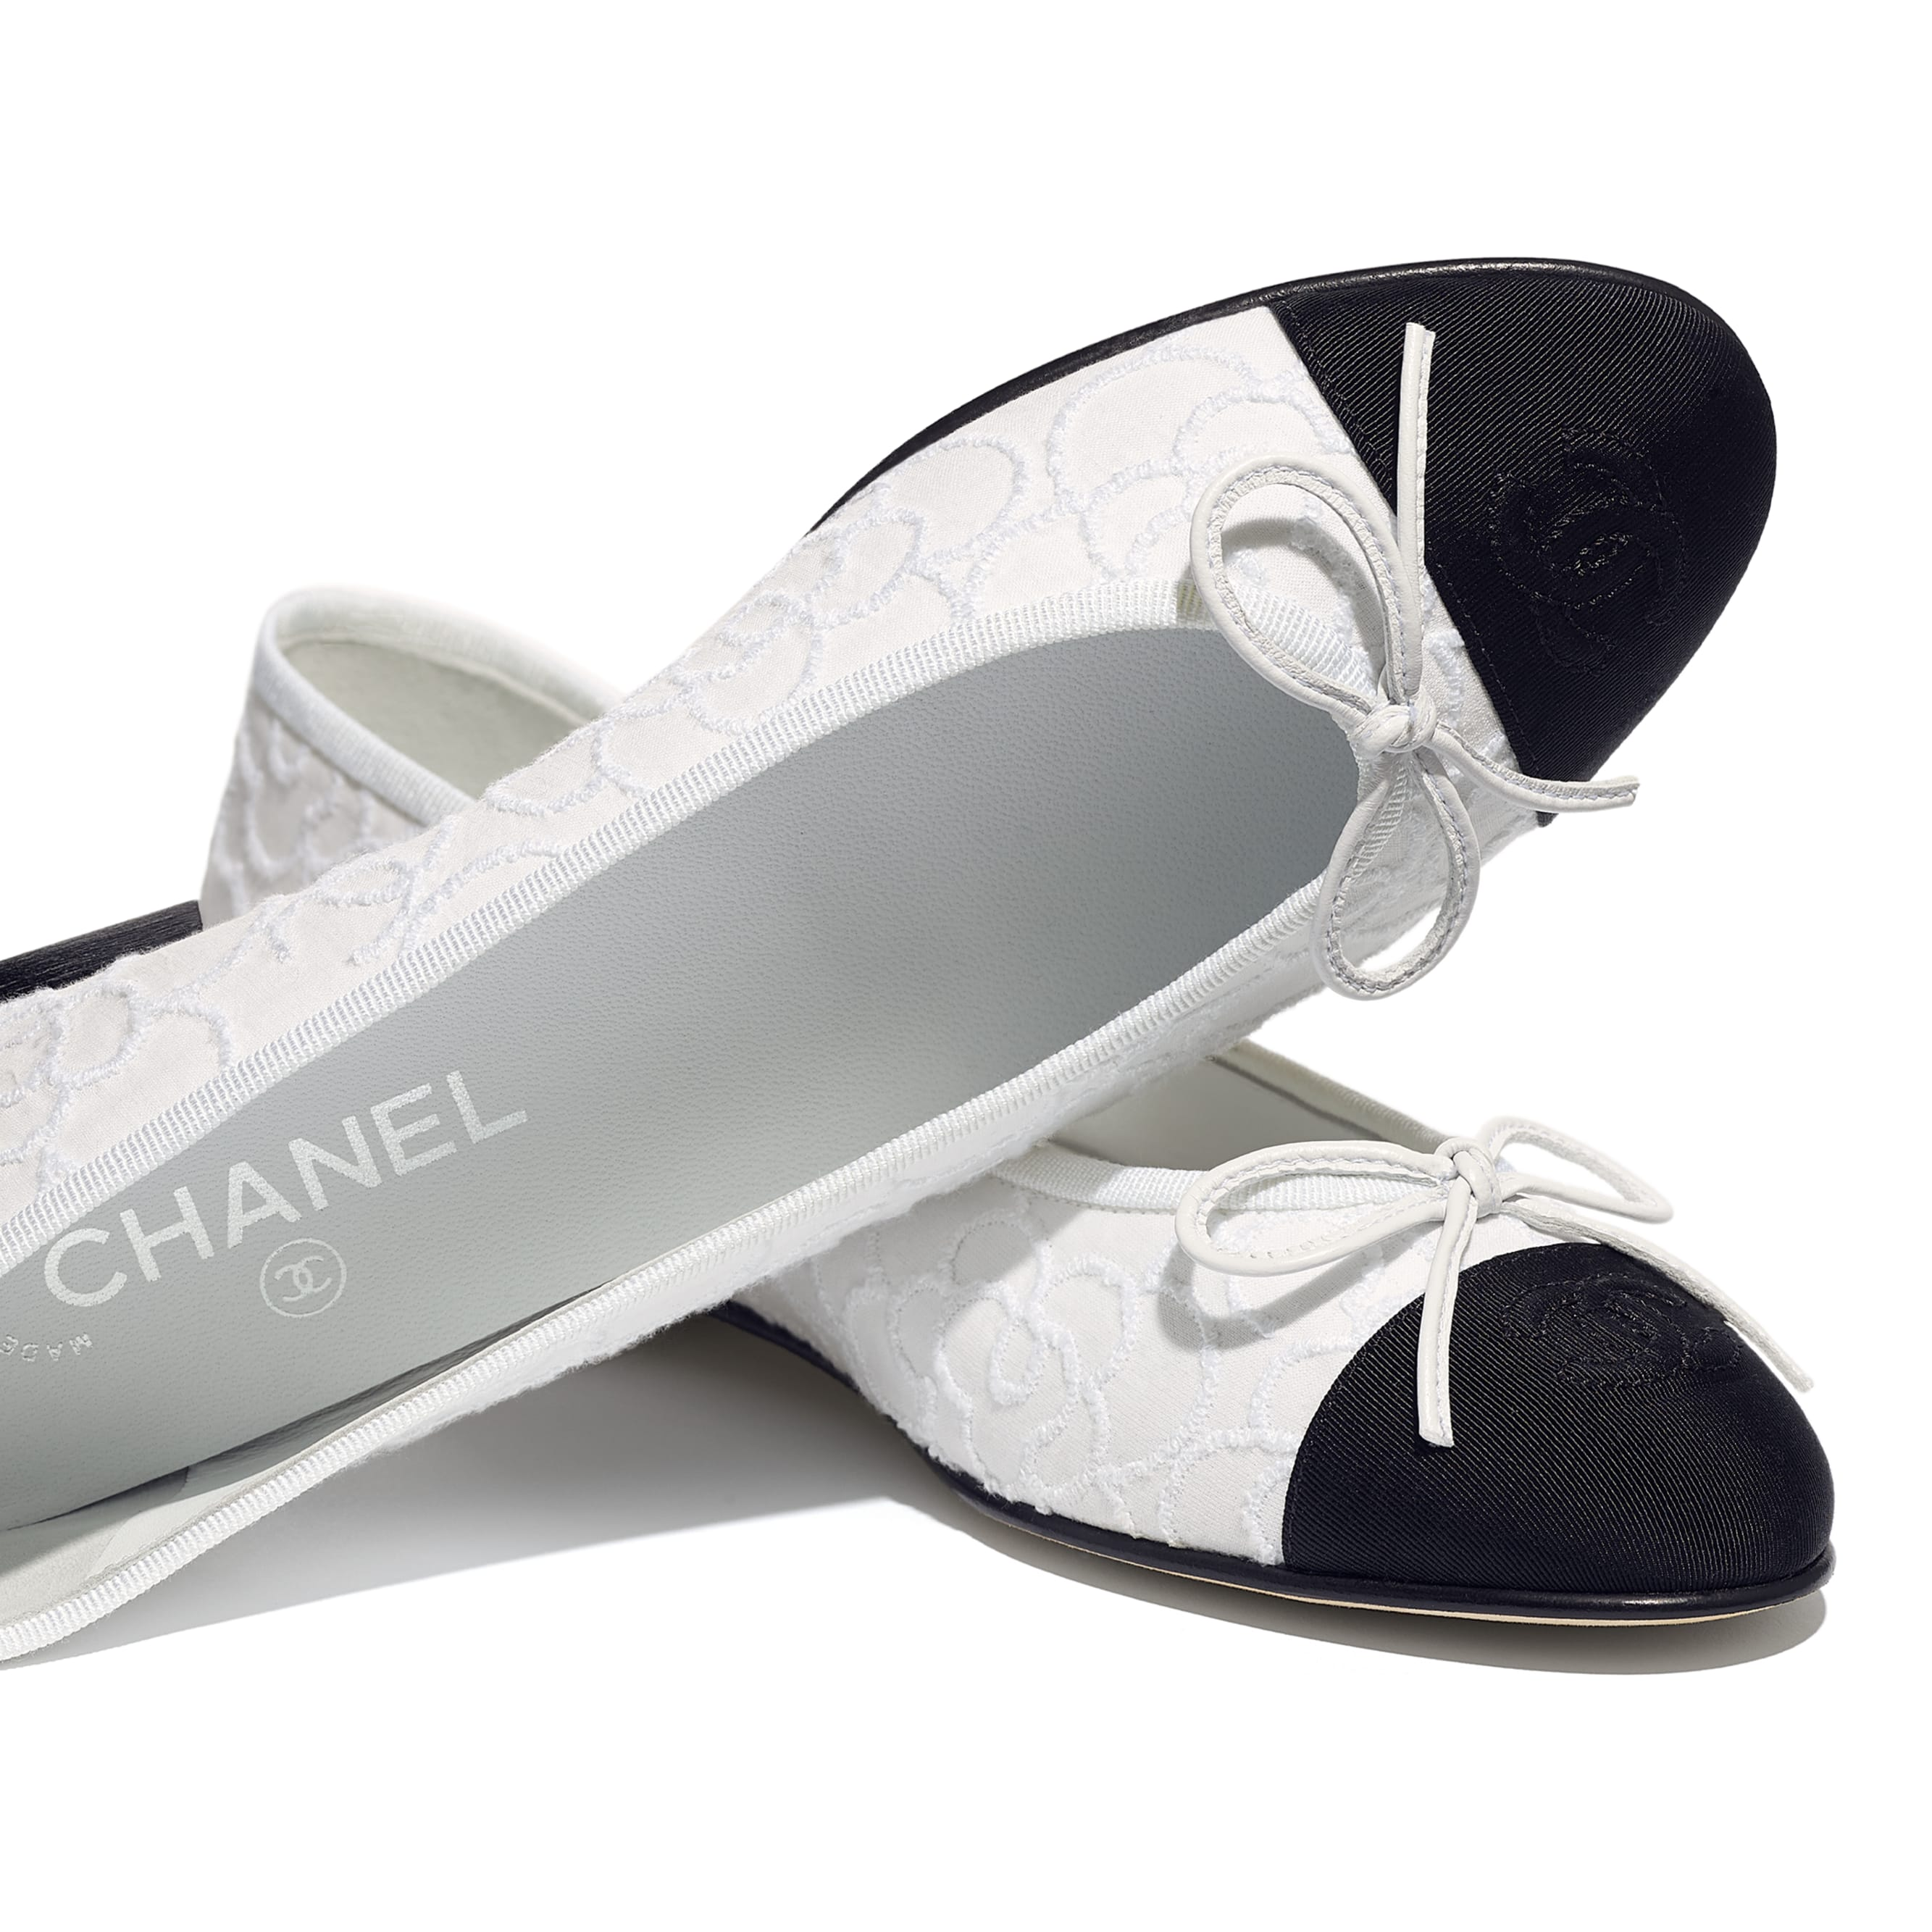 Flats - White & Black - Tweed & Grosgrain - CHANEL - Extra view - see standard sized version